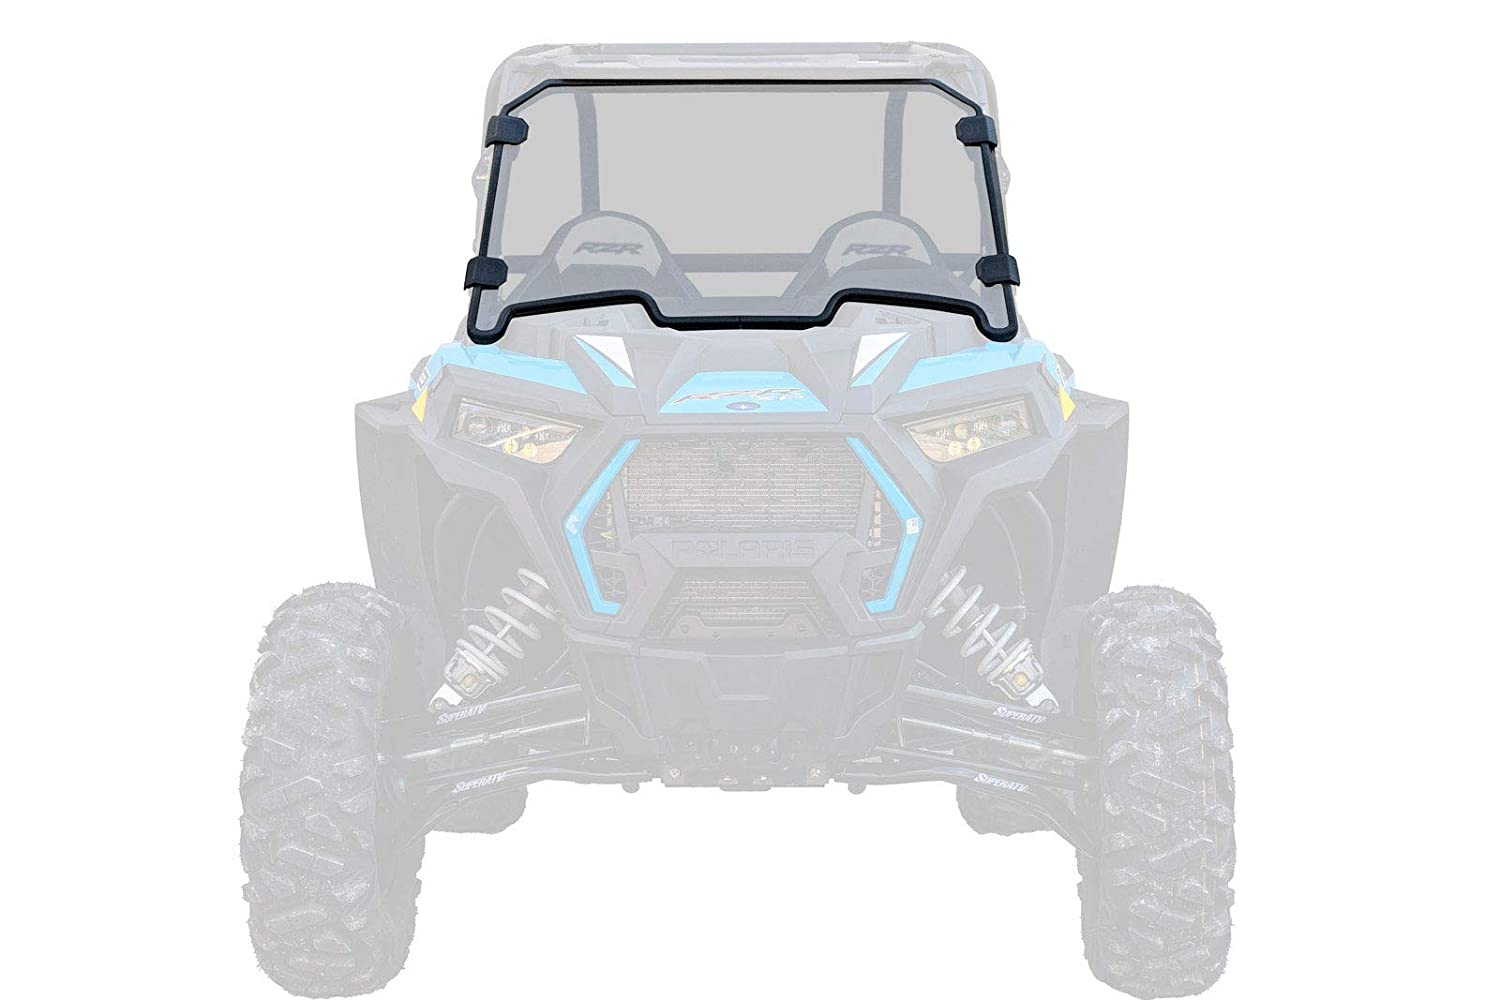 SuperATV Heavy Duty Clear Scratch Resistant Full Windshield for Polaris RZR XP Turbo 2016-2018 4 Turbo Installs in 5 Minutes!